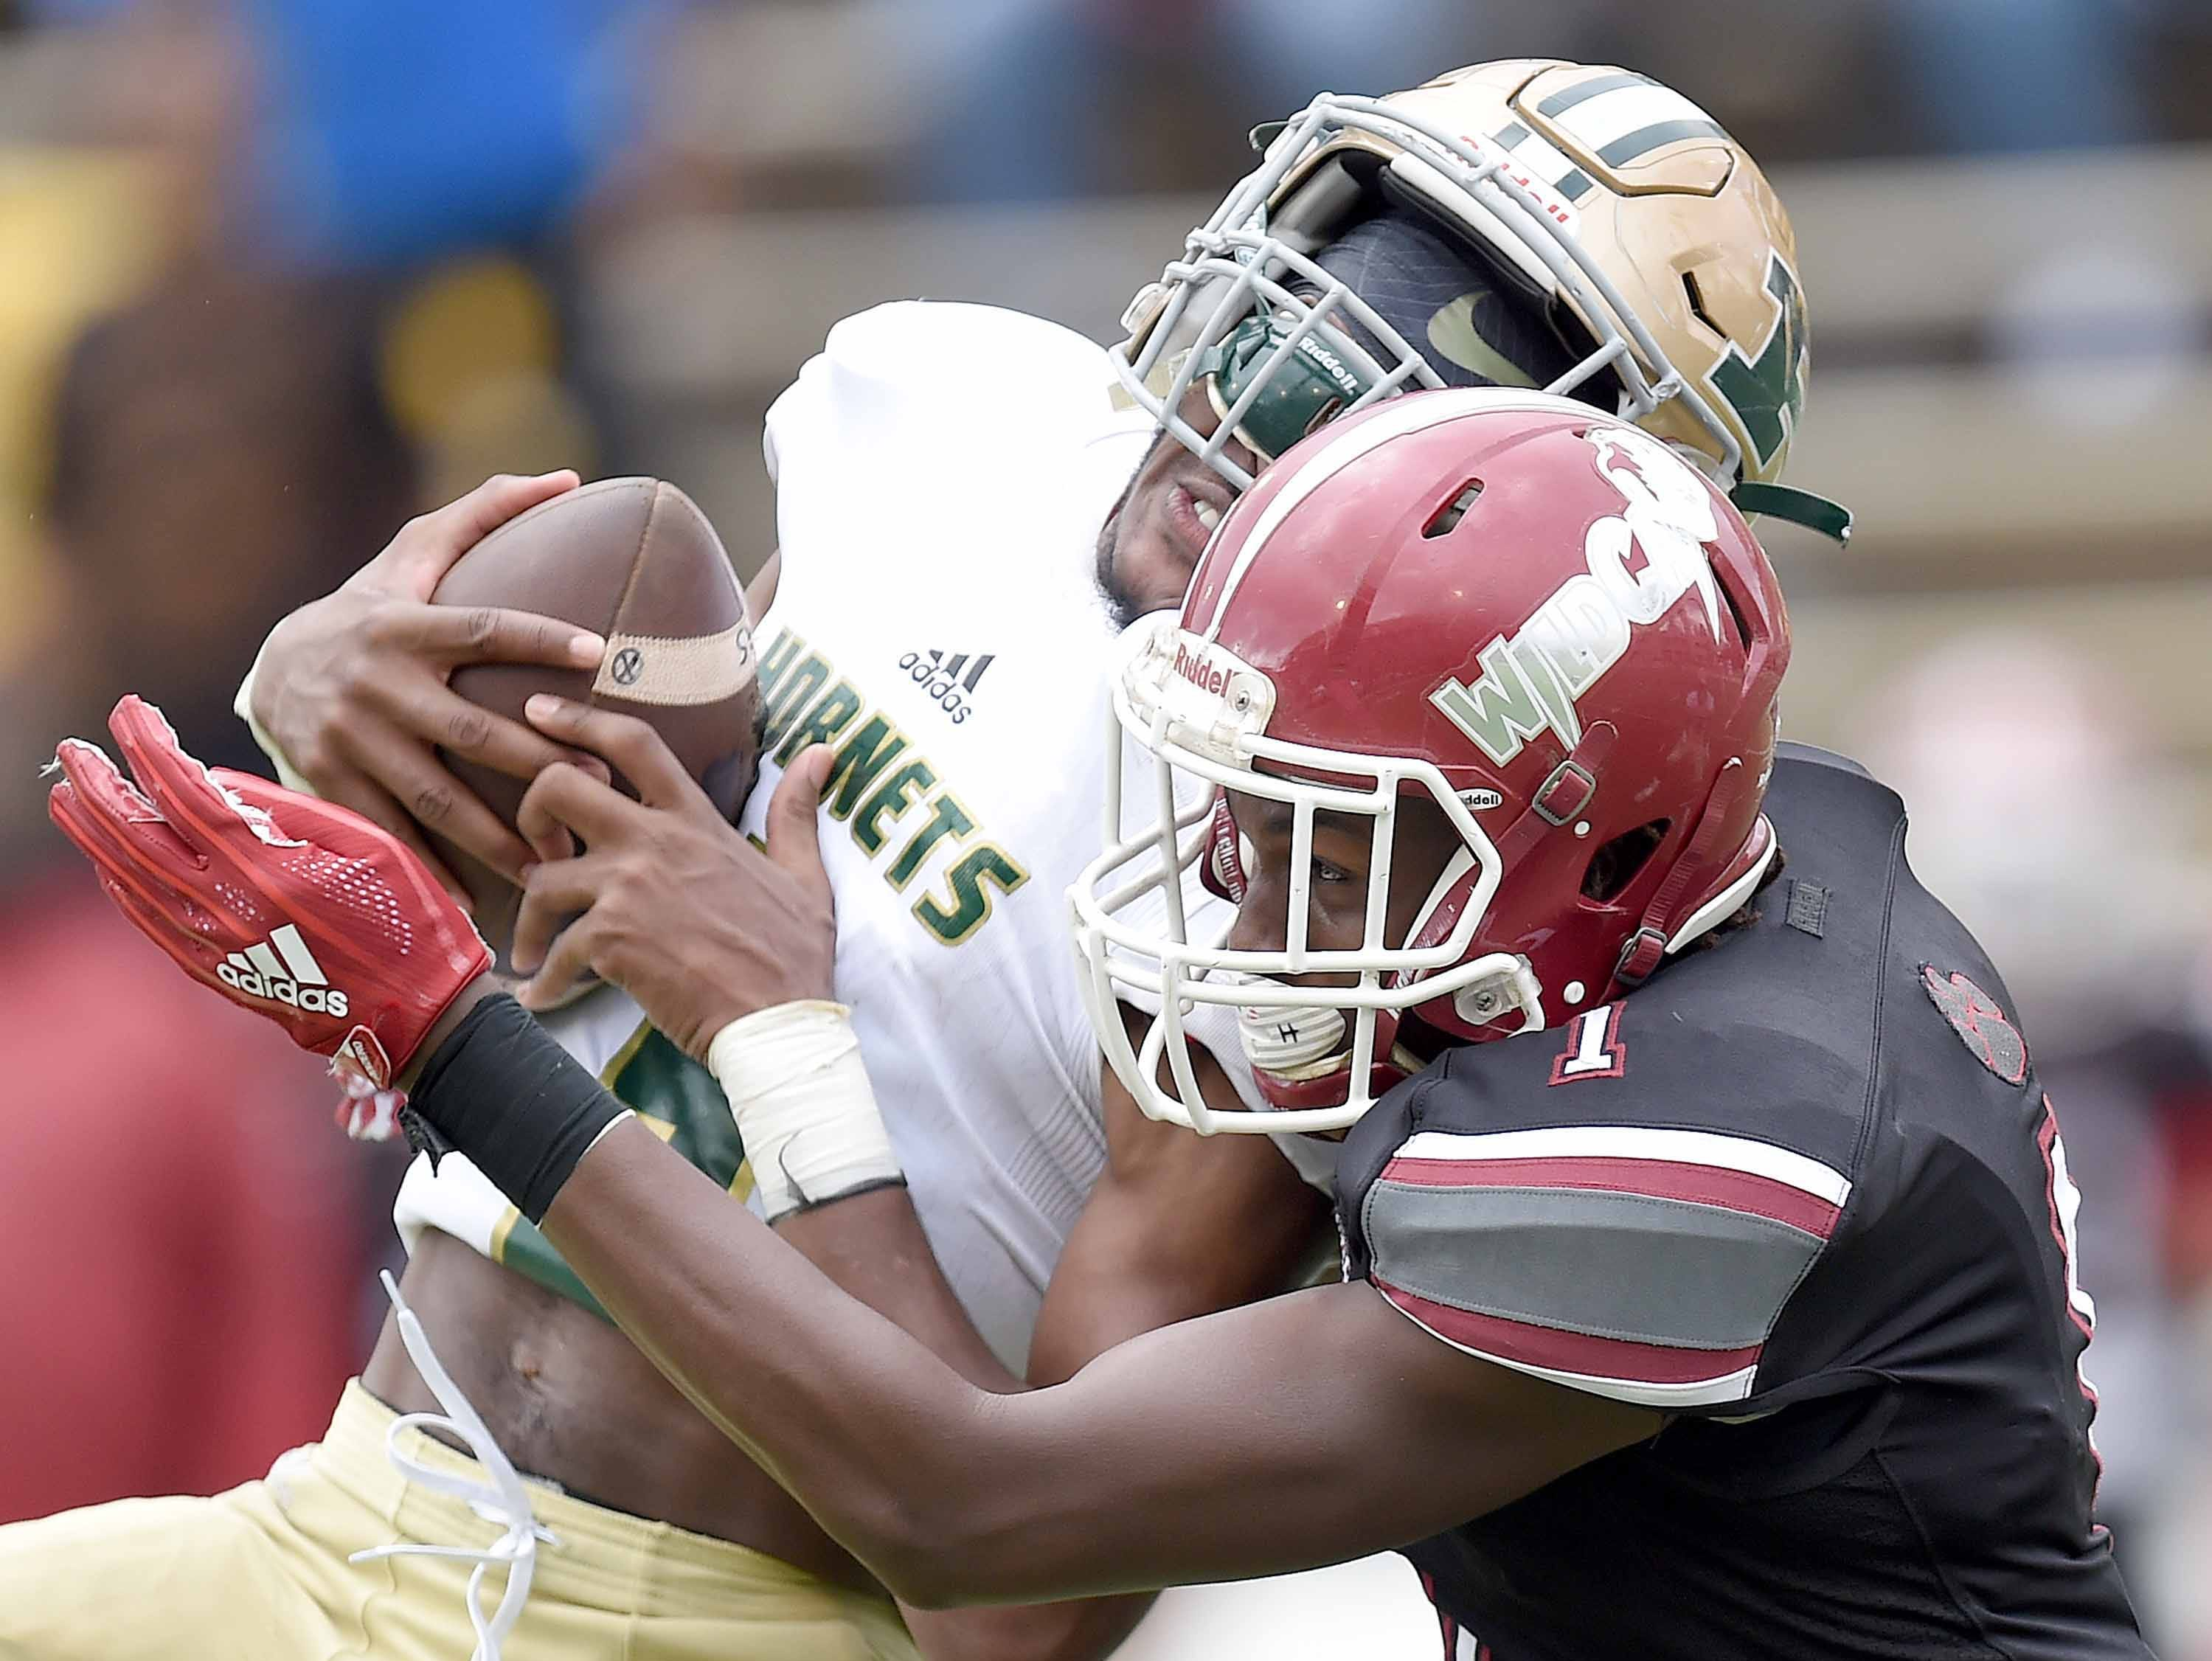 Poplarville's Antonio Barnes (left) begins to lose his helmet after intercepting a pass against Louisville on Saturday, December 1, 2018, in the MHSAA BlueCross BlueShield Gridiron Classic High School Football Championships in M.M. Roberts Stadium on the University of Southern Mississippi campus in Hattiesburg, Miss.